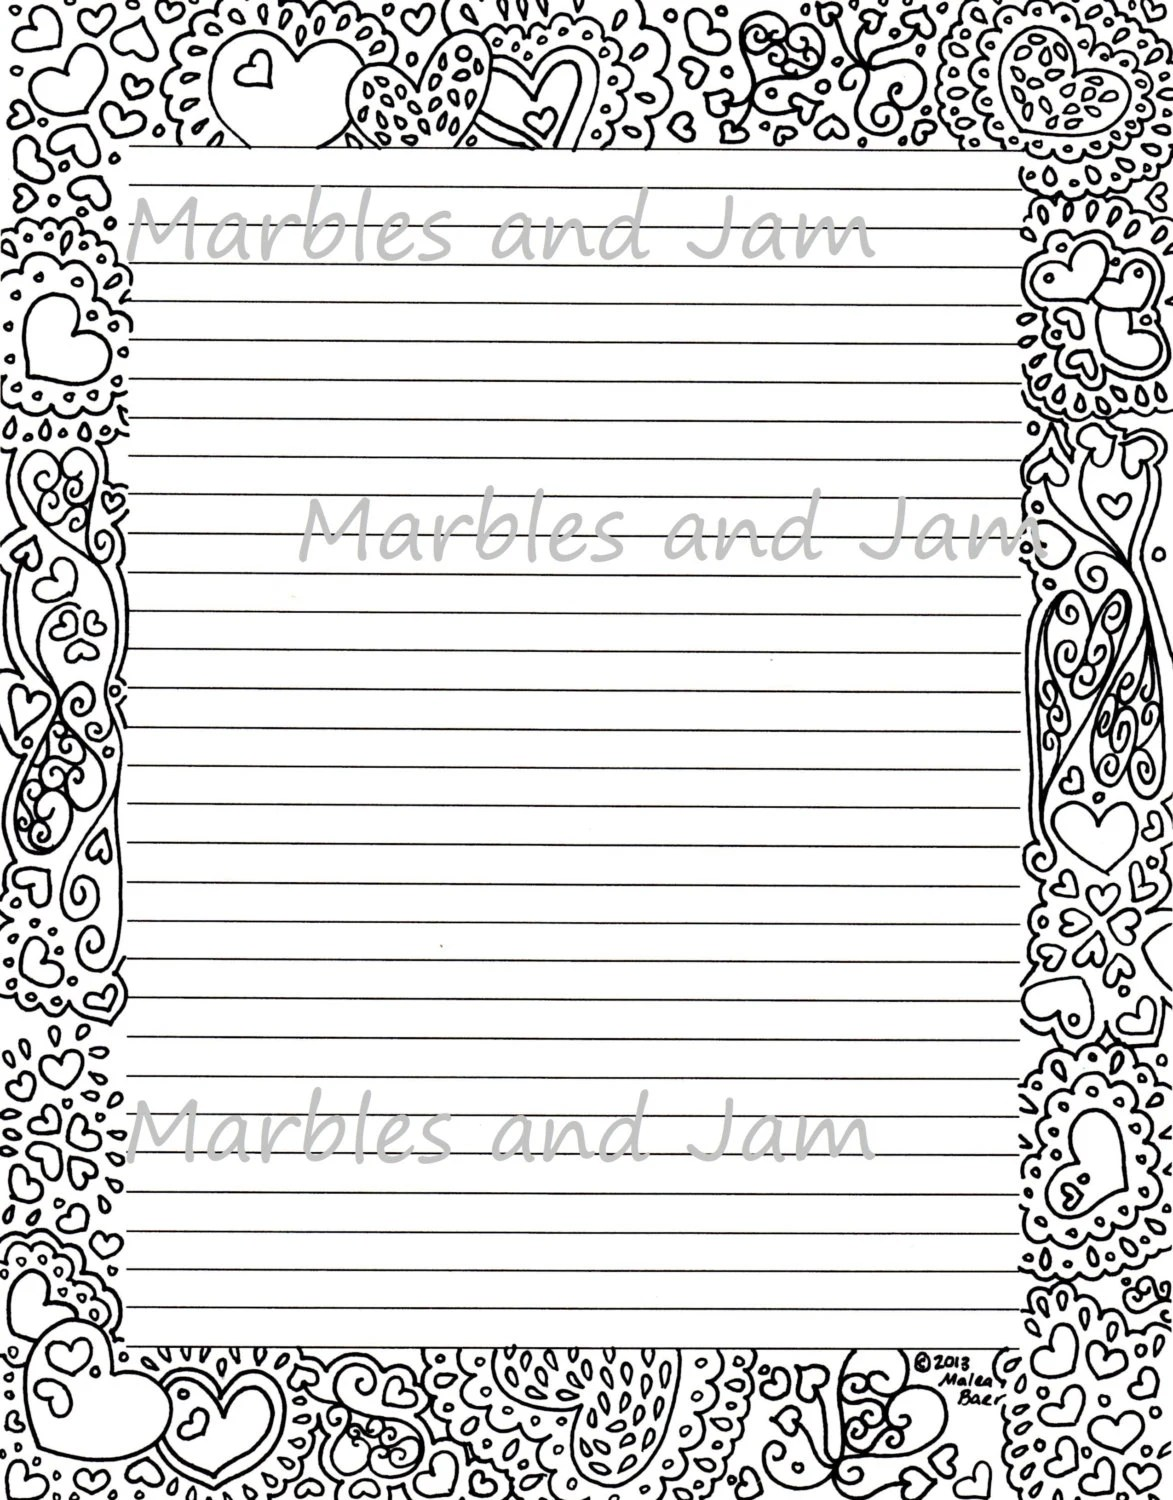 Hearts border lined printable stationery and coloring page - lined border paper